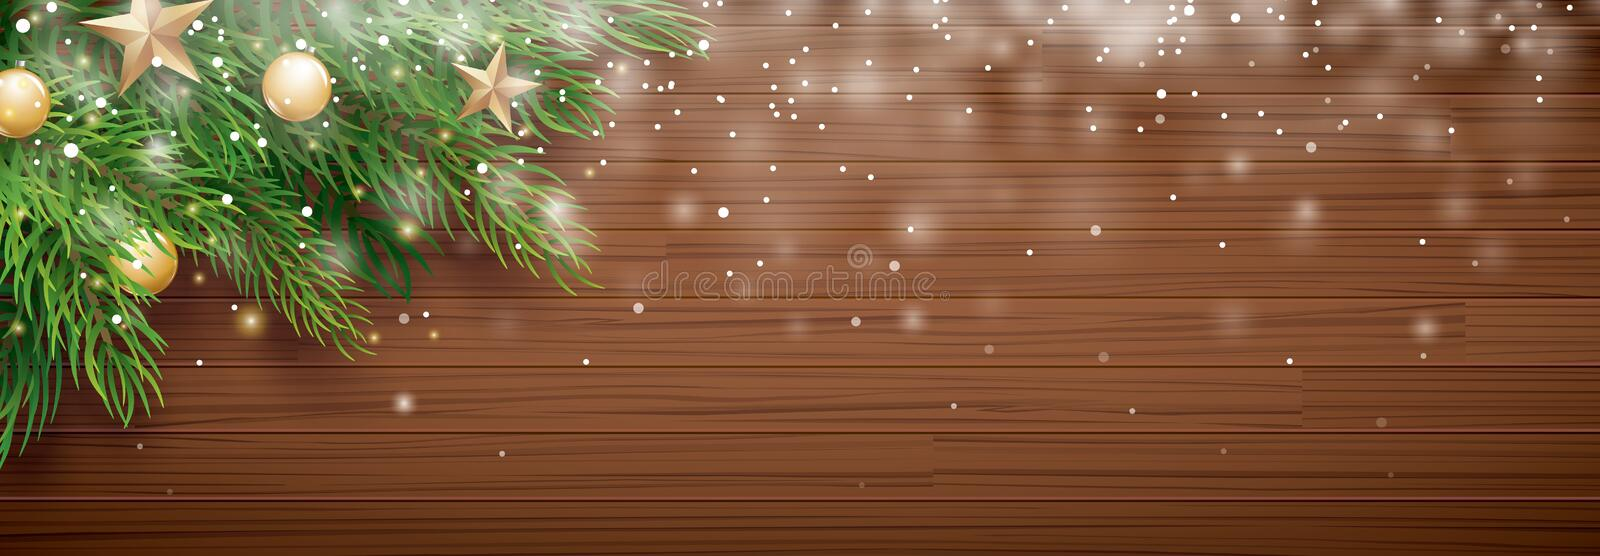 Christmas fir tree with snow on wooden background with copy space for text. Vector illustration for banner, cover, greeting card. vector illustration